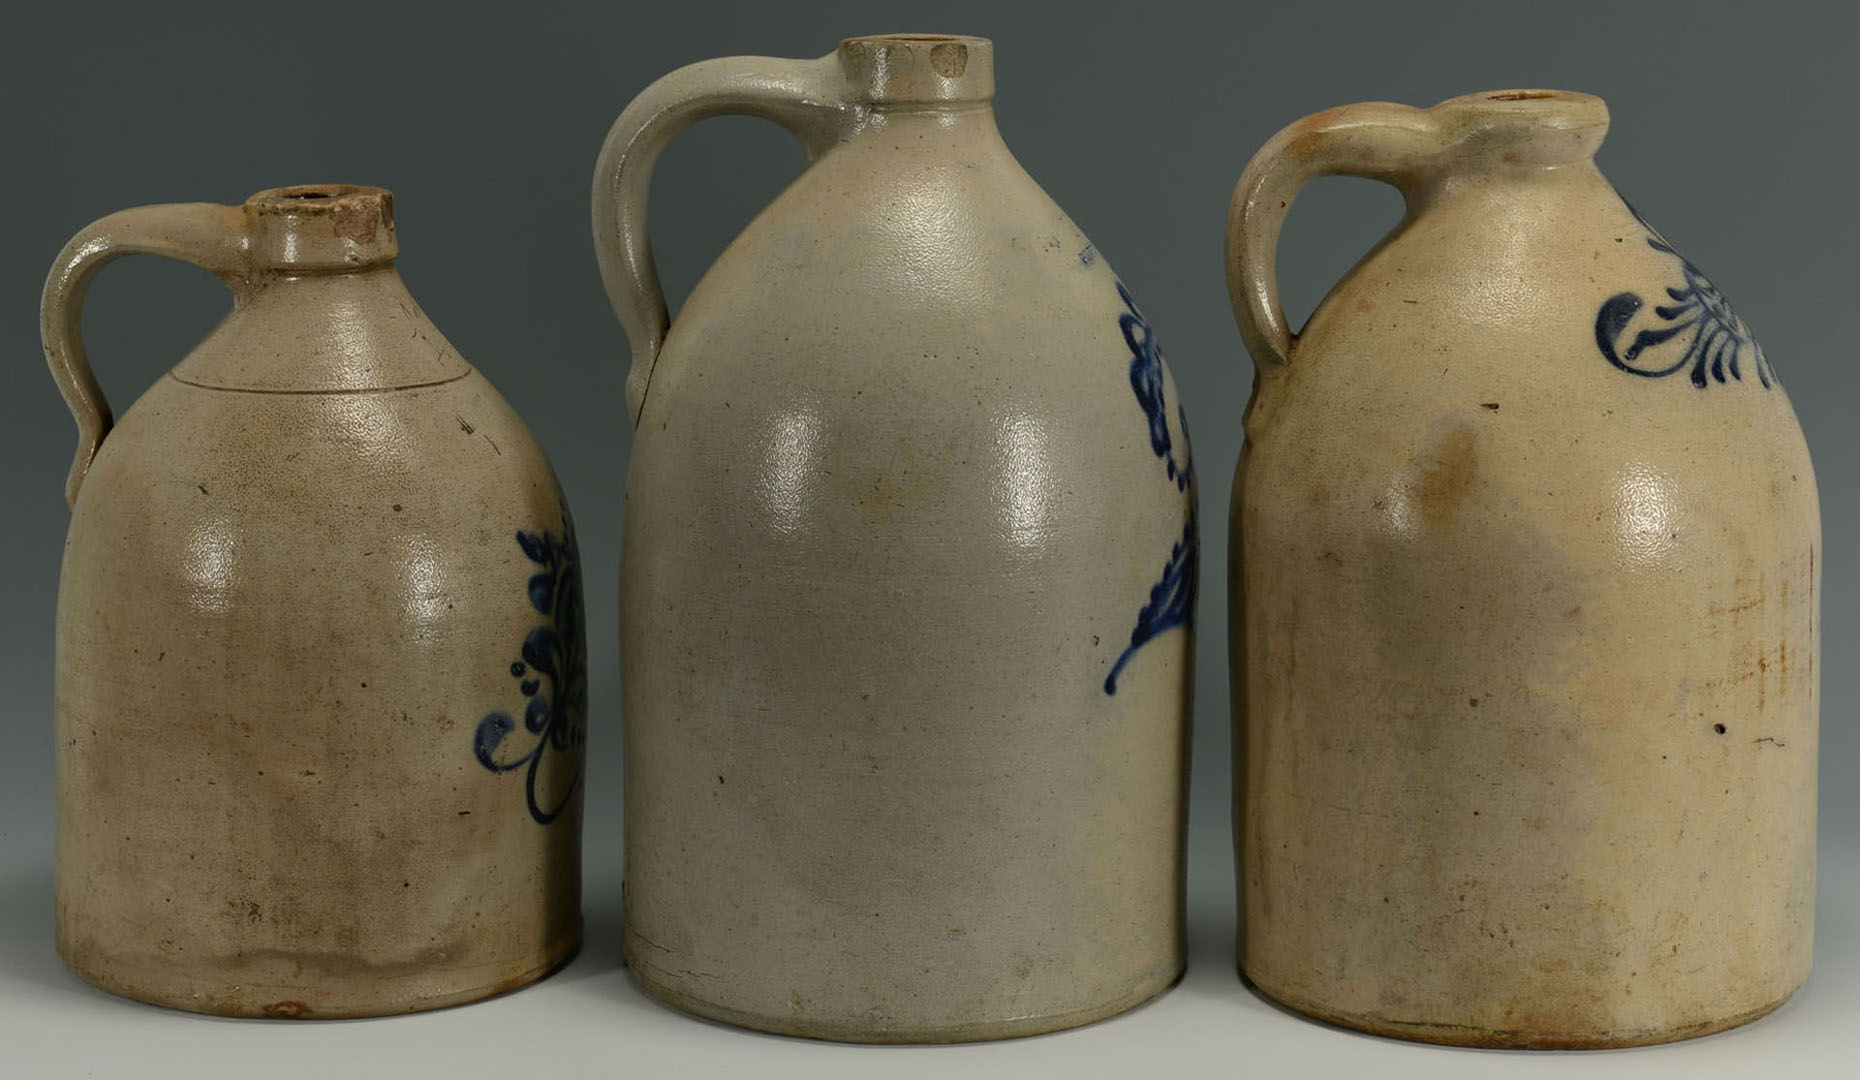 Lot 2872351: 3 Cobalt Decorated Stoneware Jugs